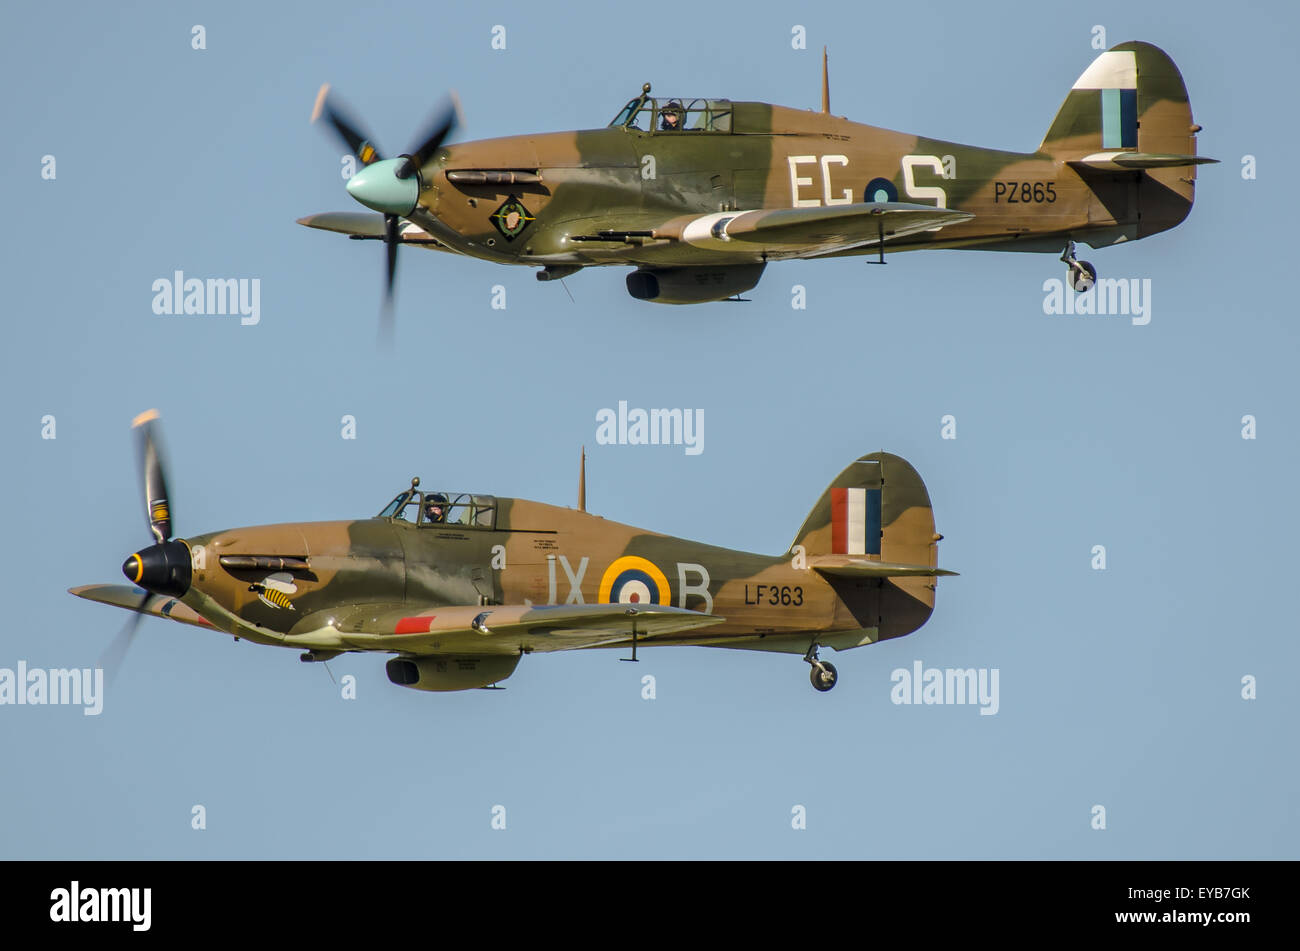 Two Hawker Hurricanes of the RAF's Battle of Britain Memorial Flight - Stock Image